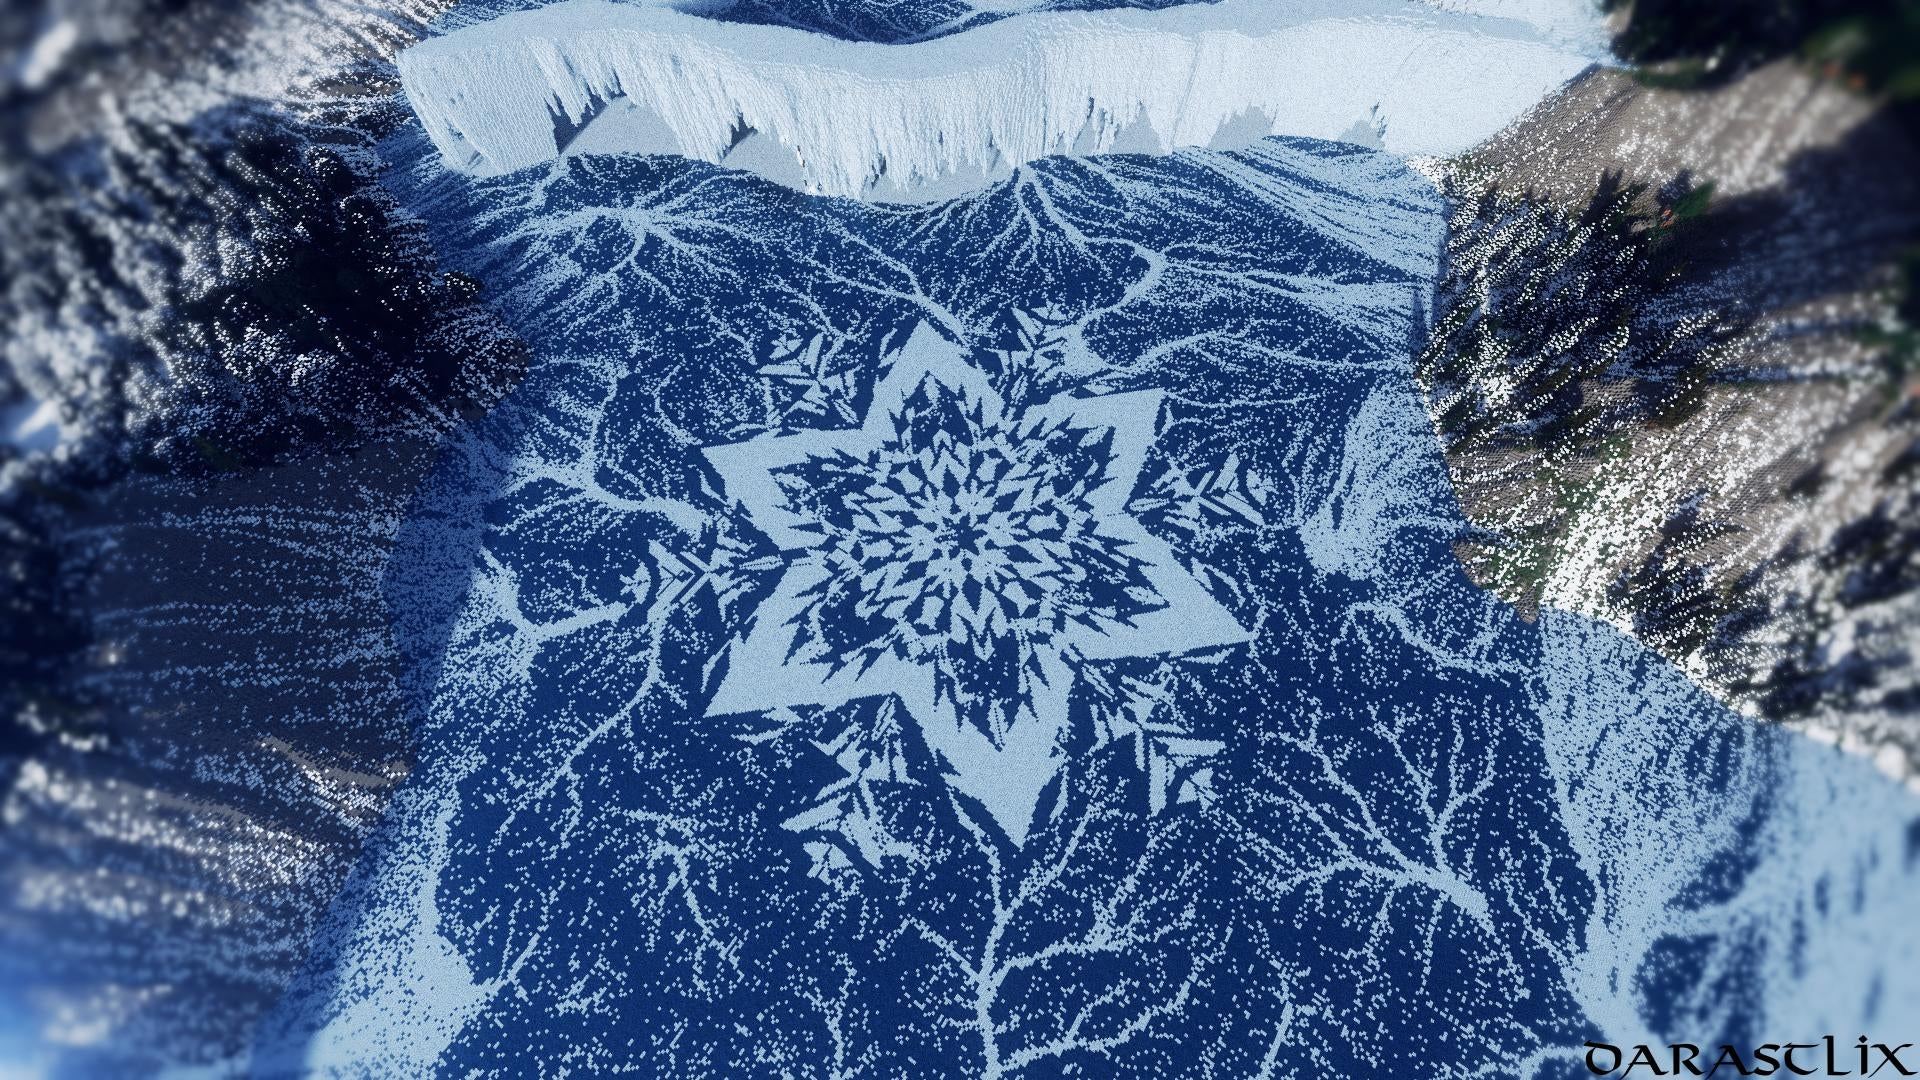 Good Wallpaper Minecraft Winter - sfvhw009ign8xitfsmdn  Perfect Image Reference_587574.jpg